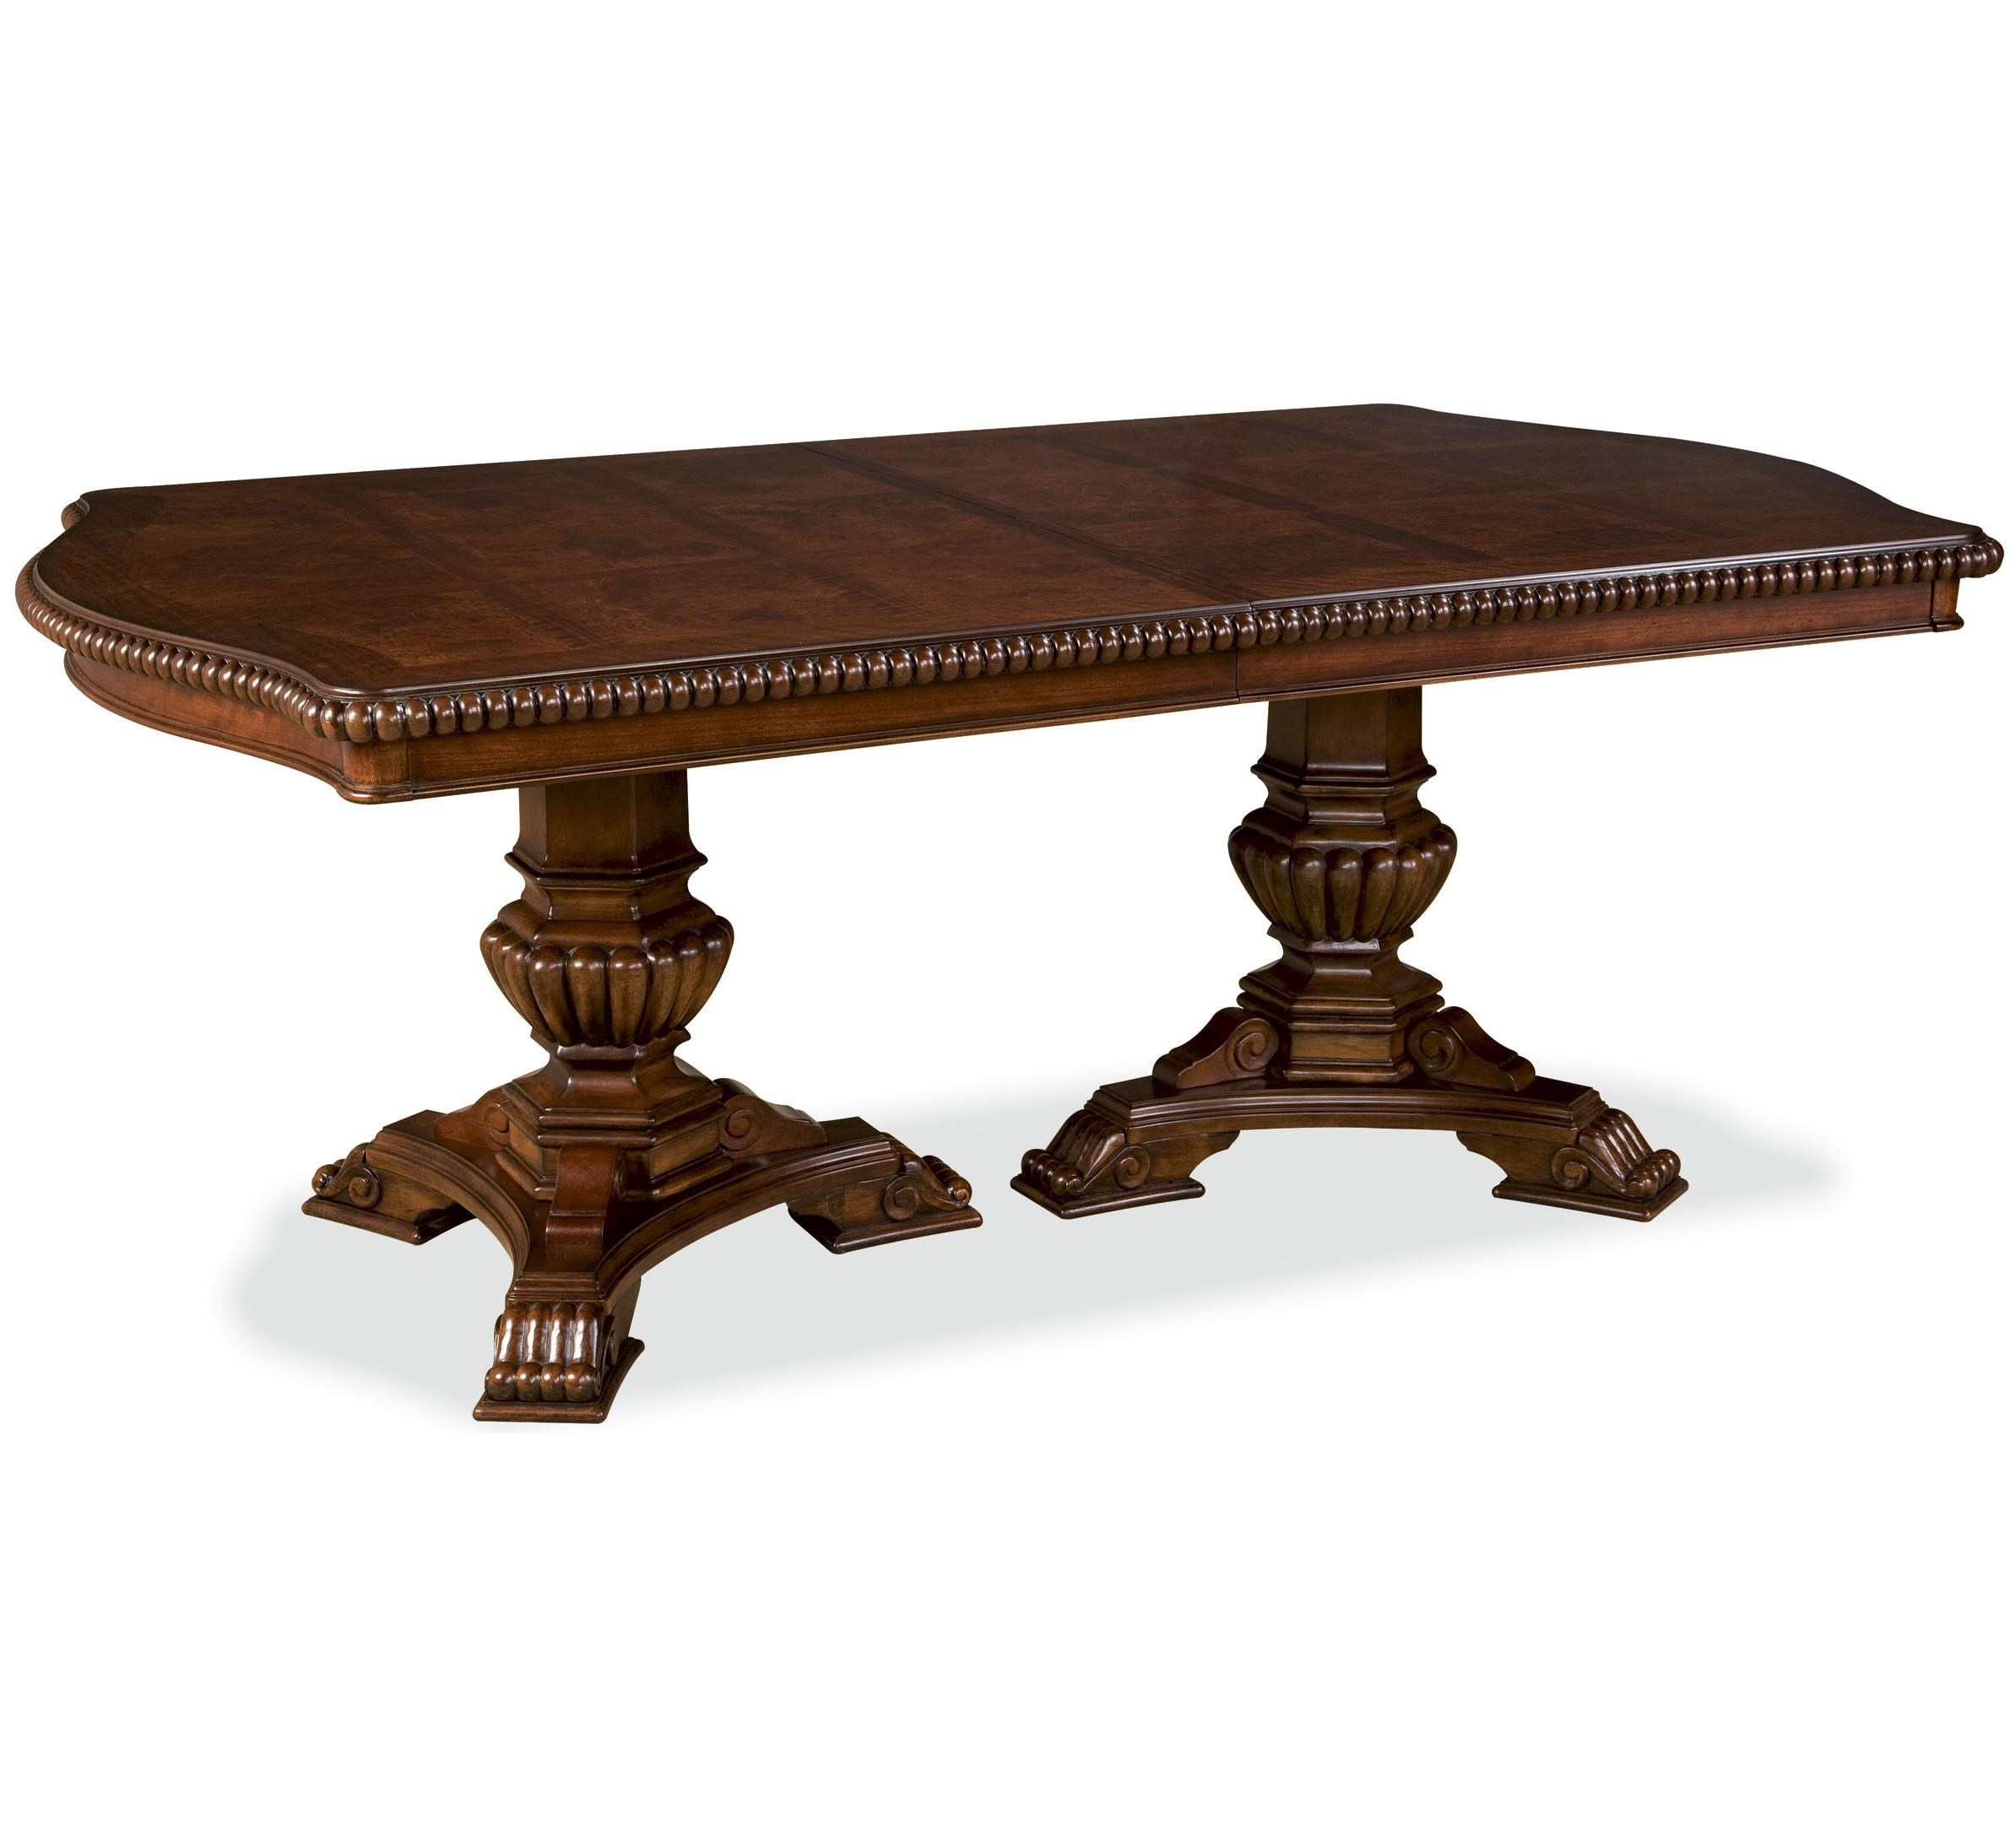 pedestal dining room table. Universal Villa CortinaDouble Pedestal Dining Room Table U